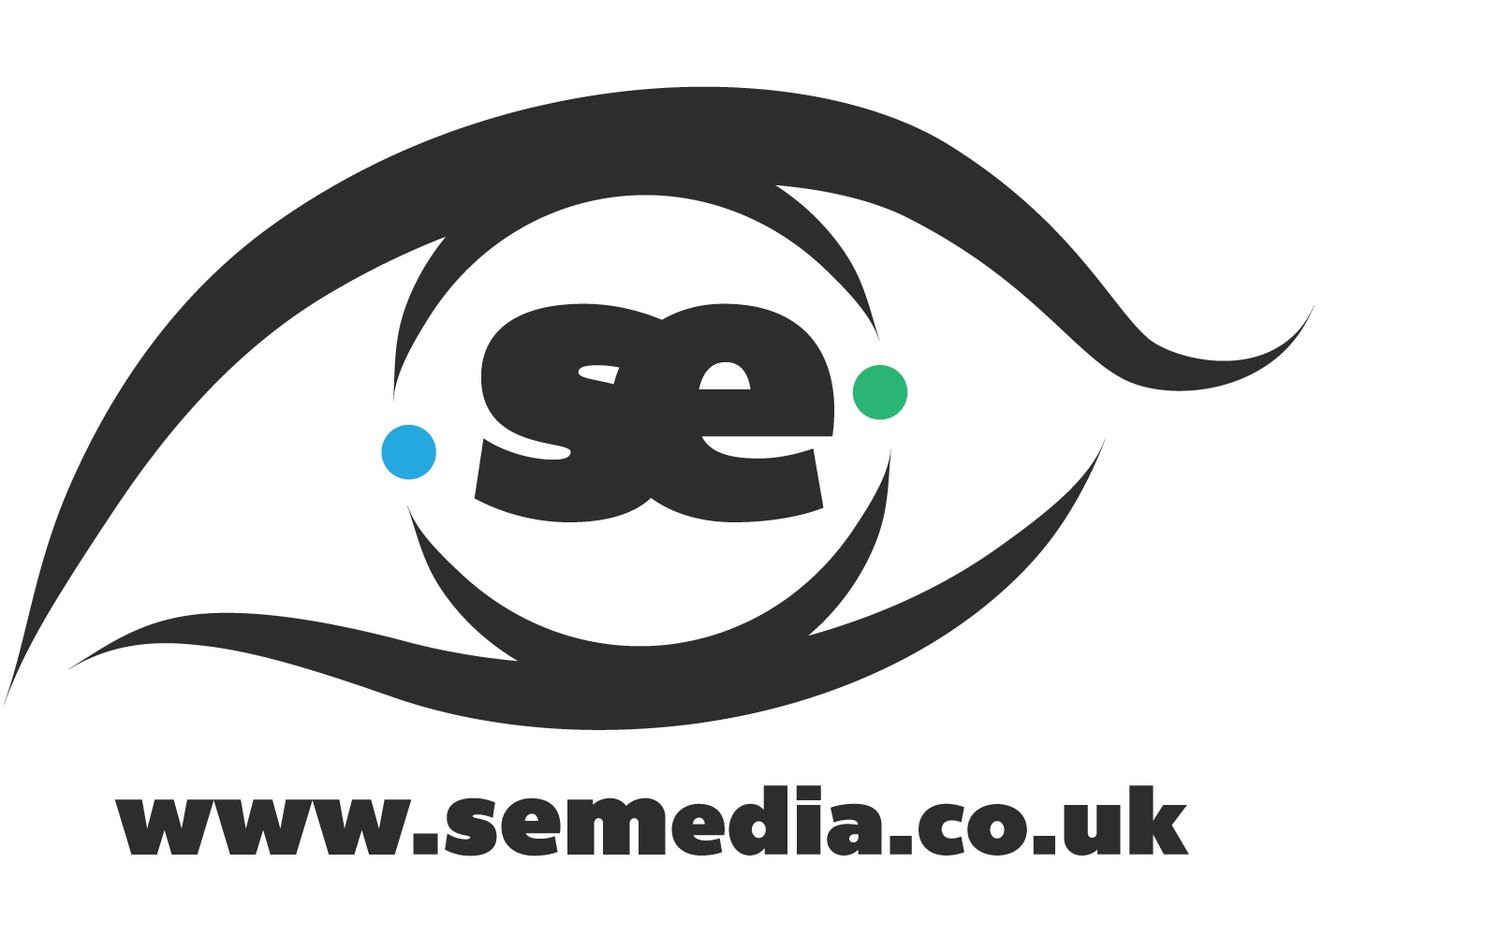 SEmedia - Video Production in London, Kent, Surrey, Sussex, Essex